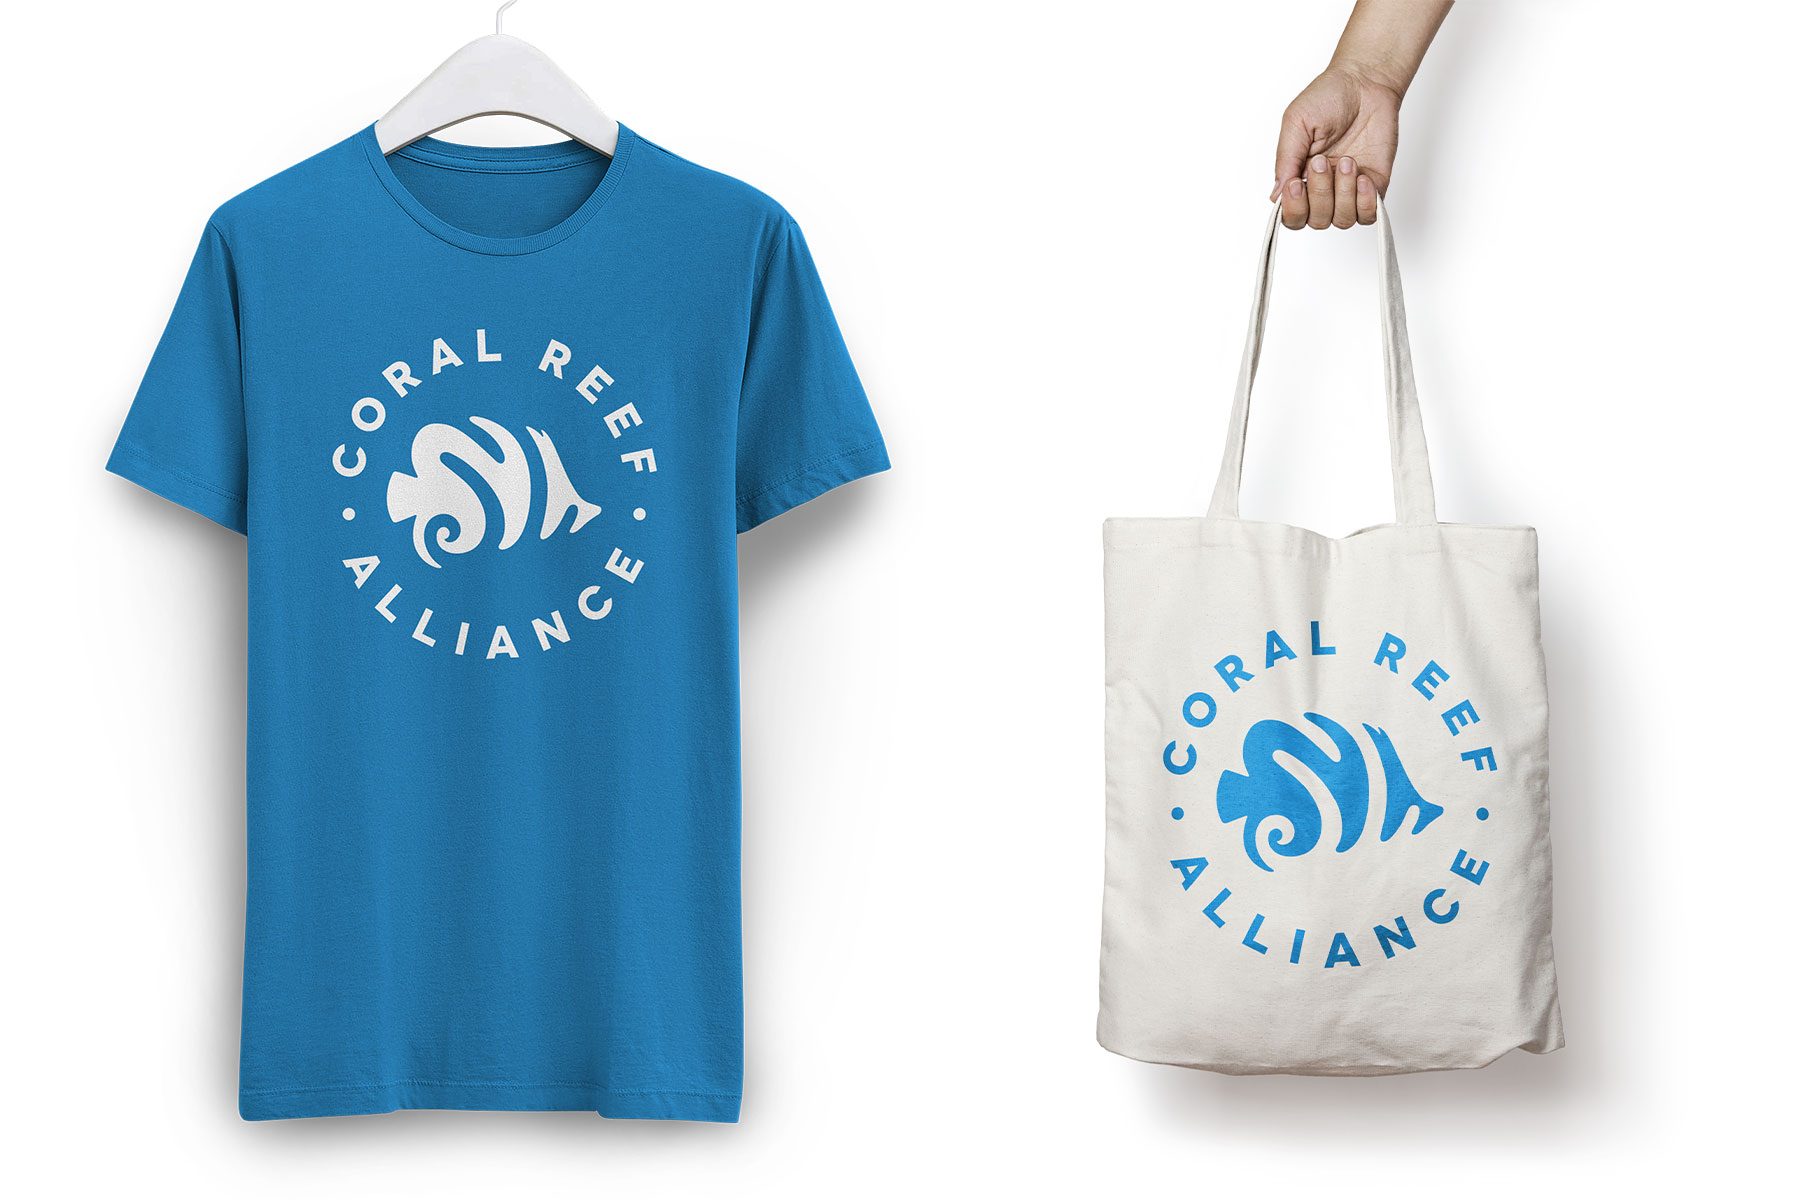 Coral Reef Alliance - T-shirt and Tote Bag